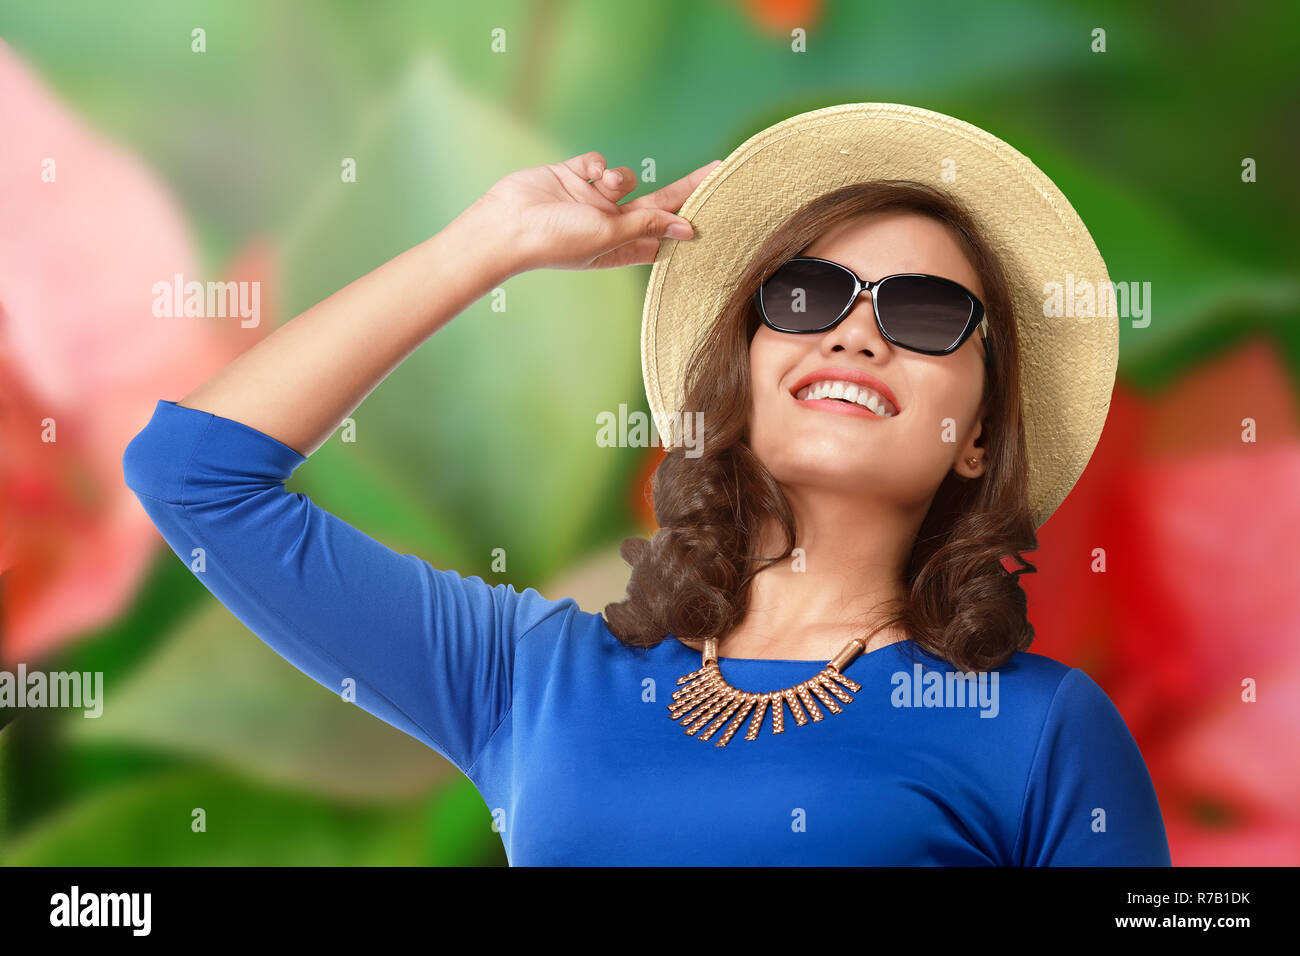 ed34576cc6ae Smiling asian tourist woman with hat and eyeglasses Stock Photo ...